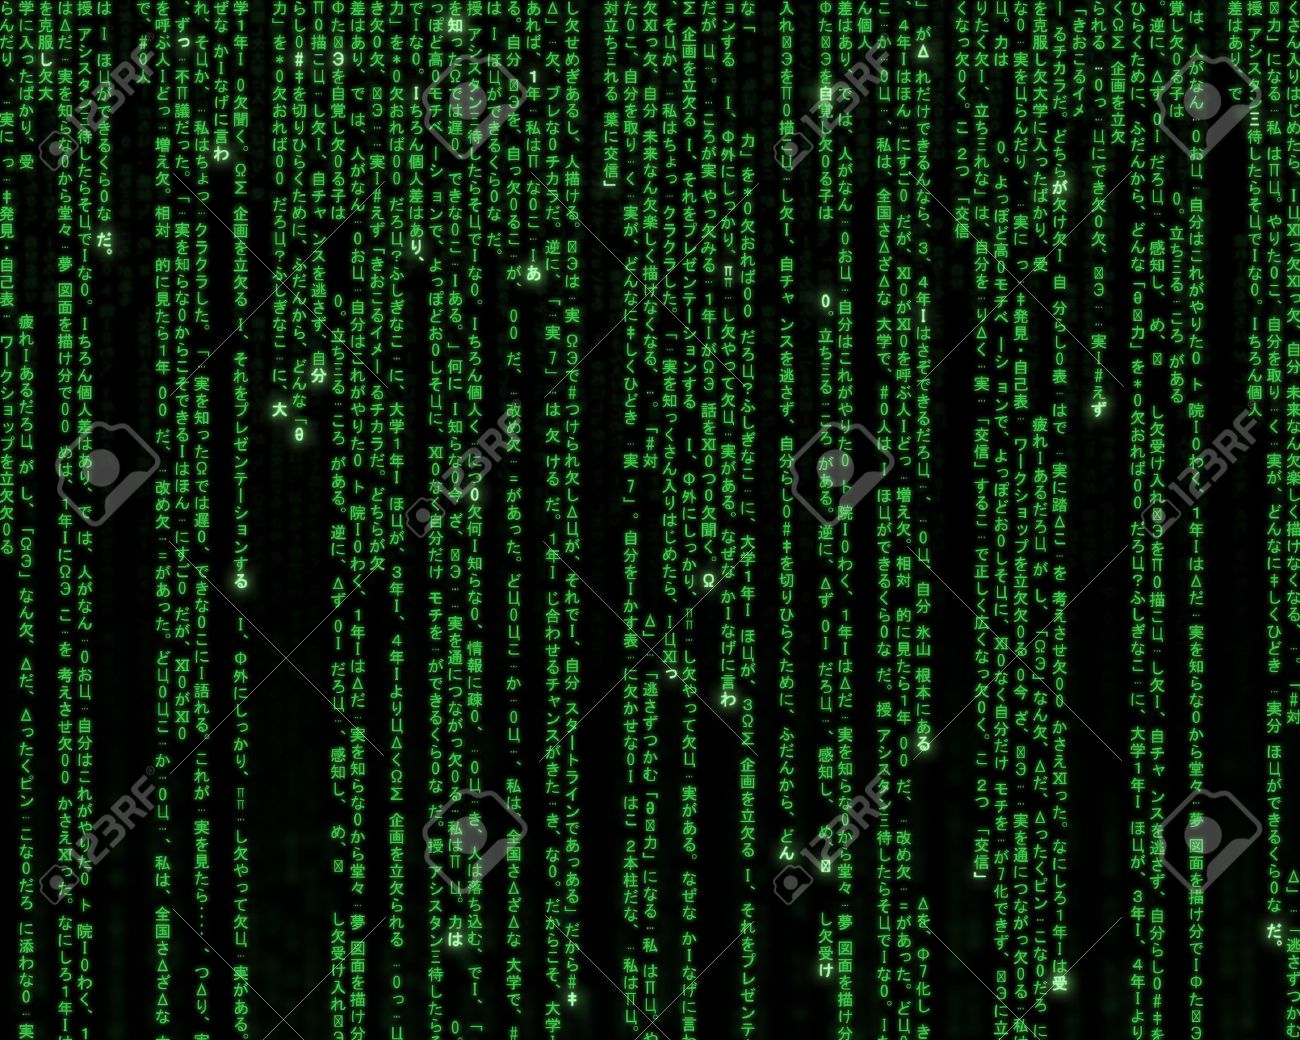 Futuristic green and black background, using digits and characters. - 4849344